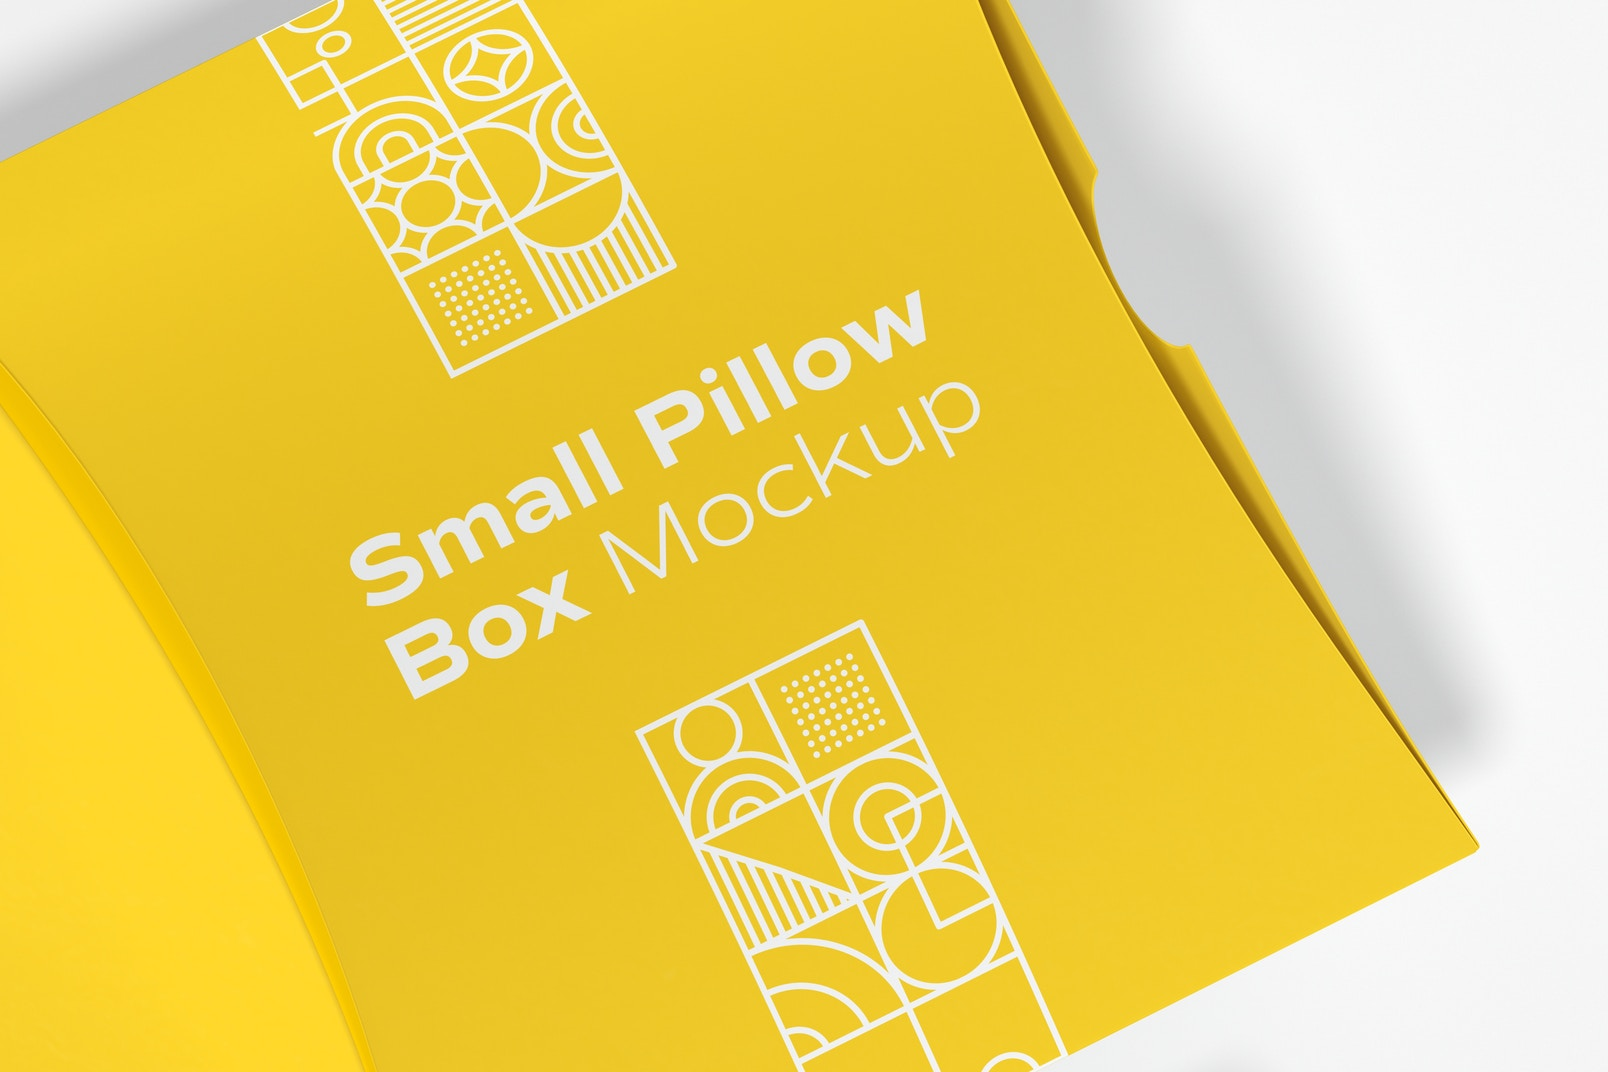 Small Pillow Boxes Mockup, Top View